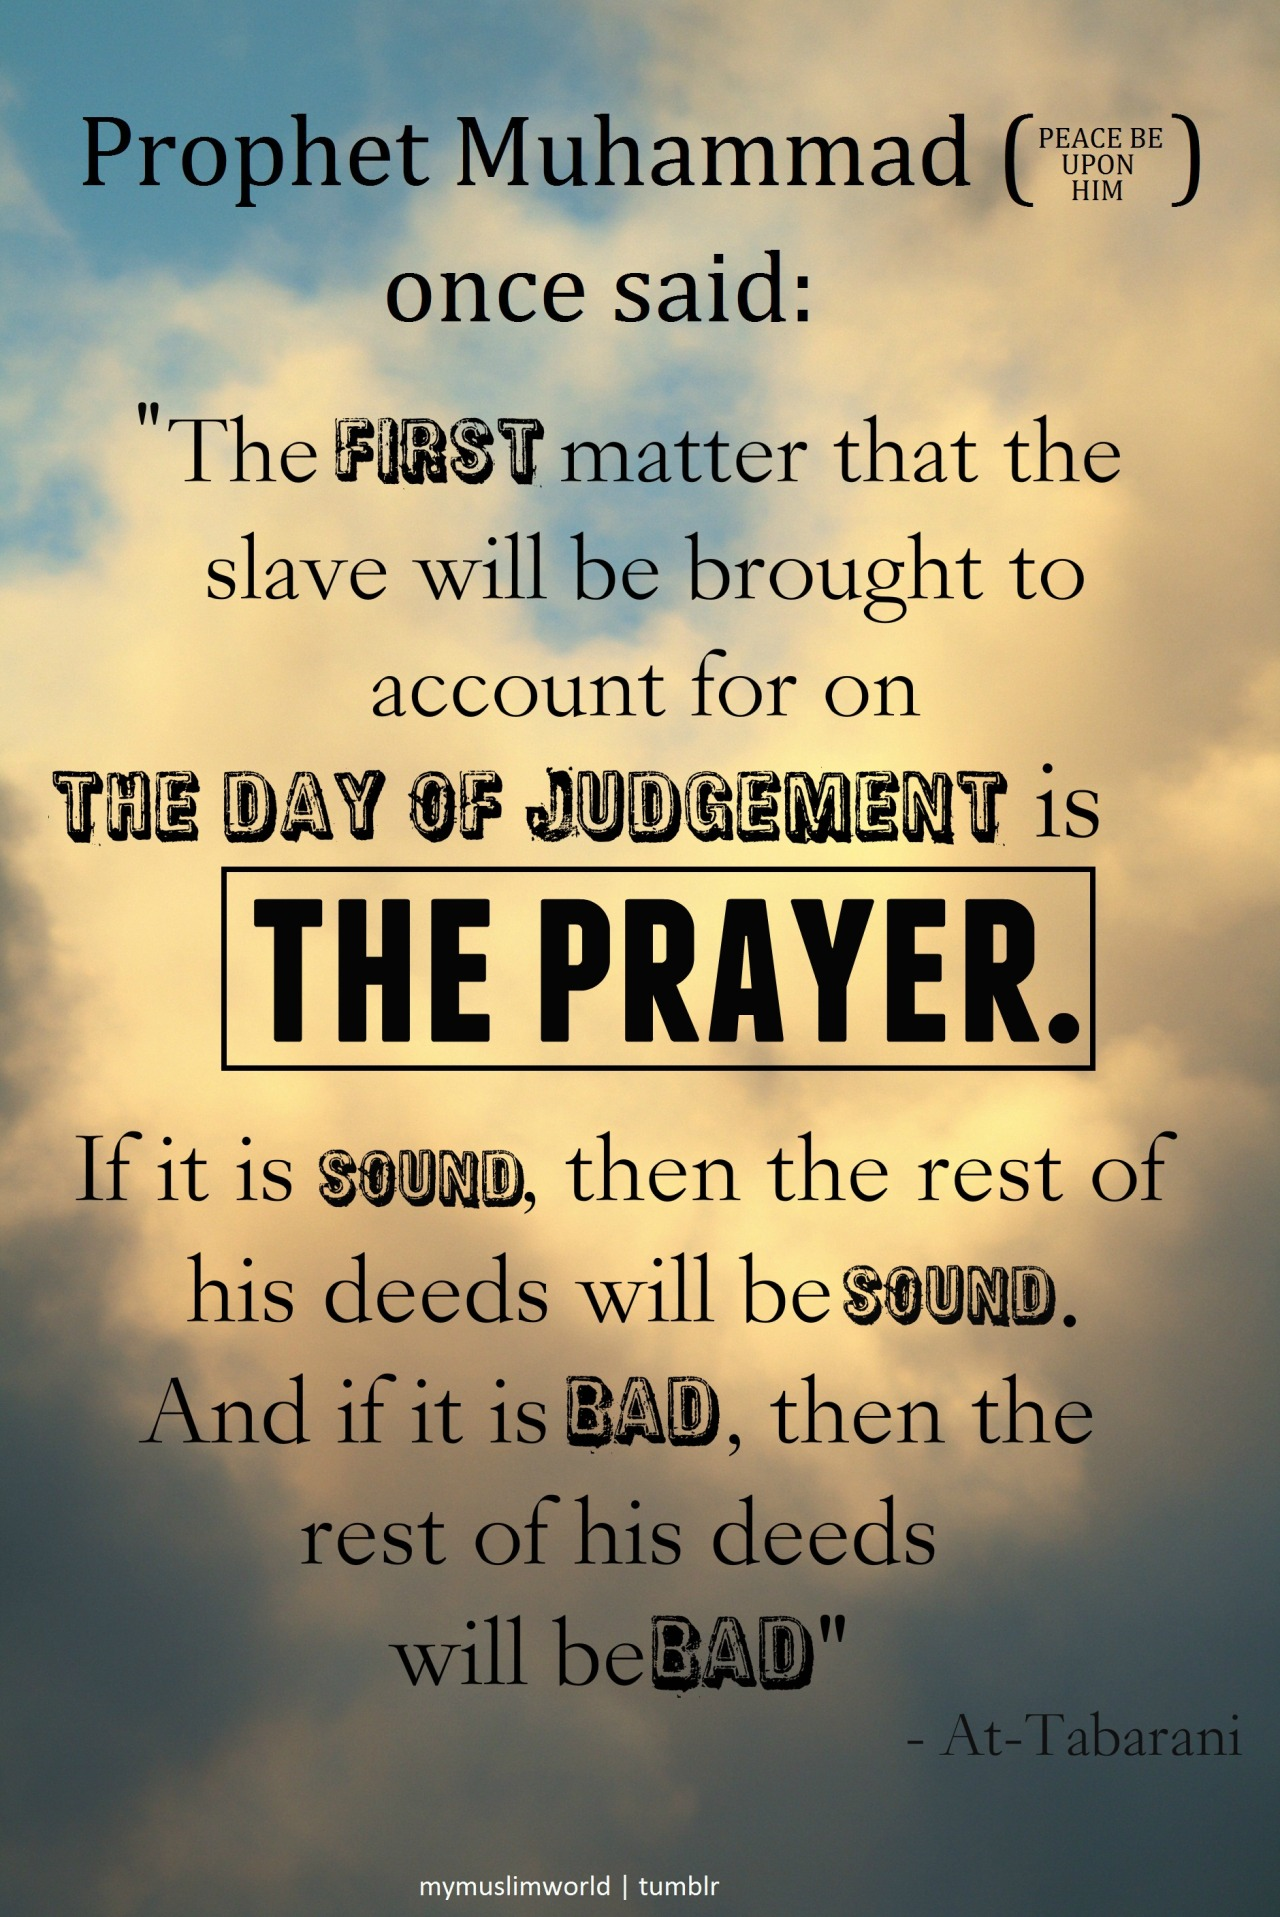 "Prophet Muhammad (PBUH) said: ""The first matter that the slave will be brought to account for on the Day of Judgement is the prayer. If it is sound, then the rest of his deeds will be sound. And if it is bad, then the rest of his deeds will be bad."" - At-Tabarani The value of our deeds rely on the quality of our prayers."